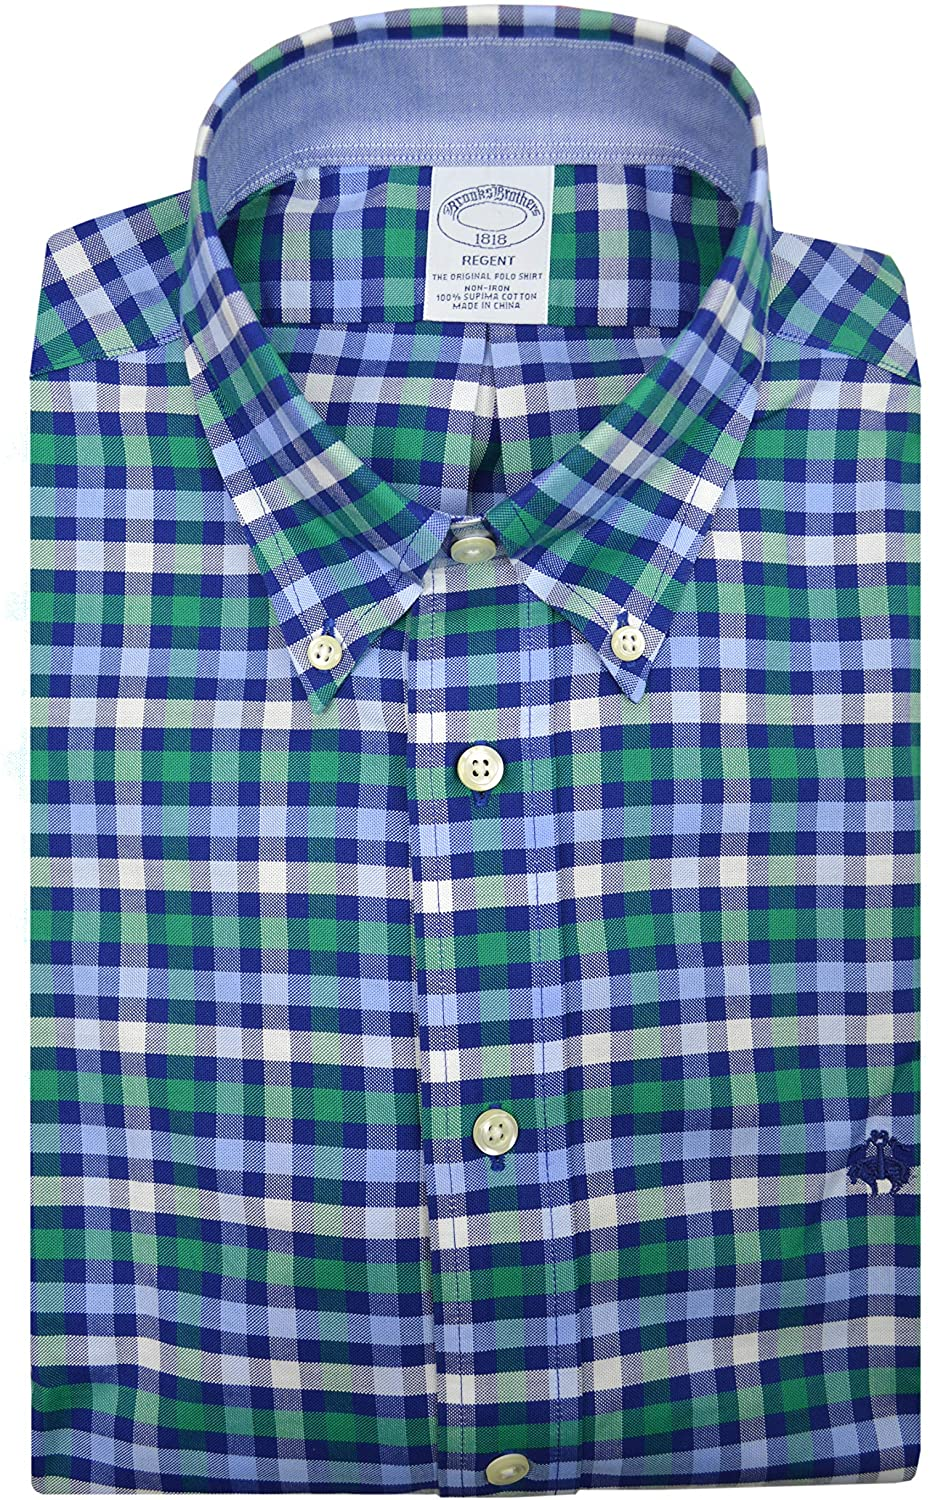 Brooks Brothers Mens 74792 Regent Fit All Cotton Embroidered Button Down Shirt Blue Green Gingham Plaid